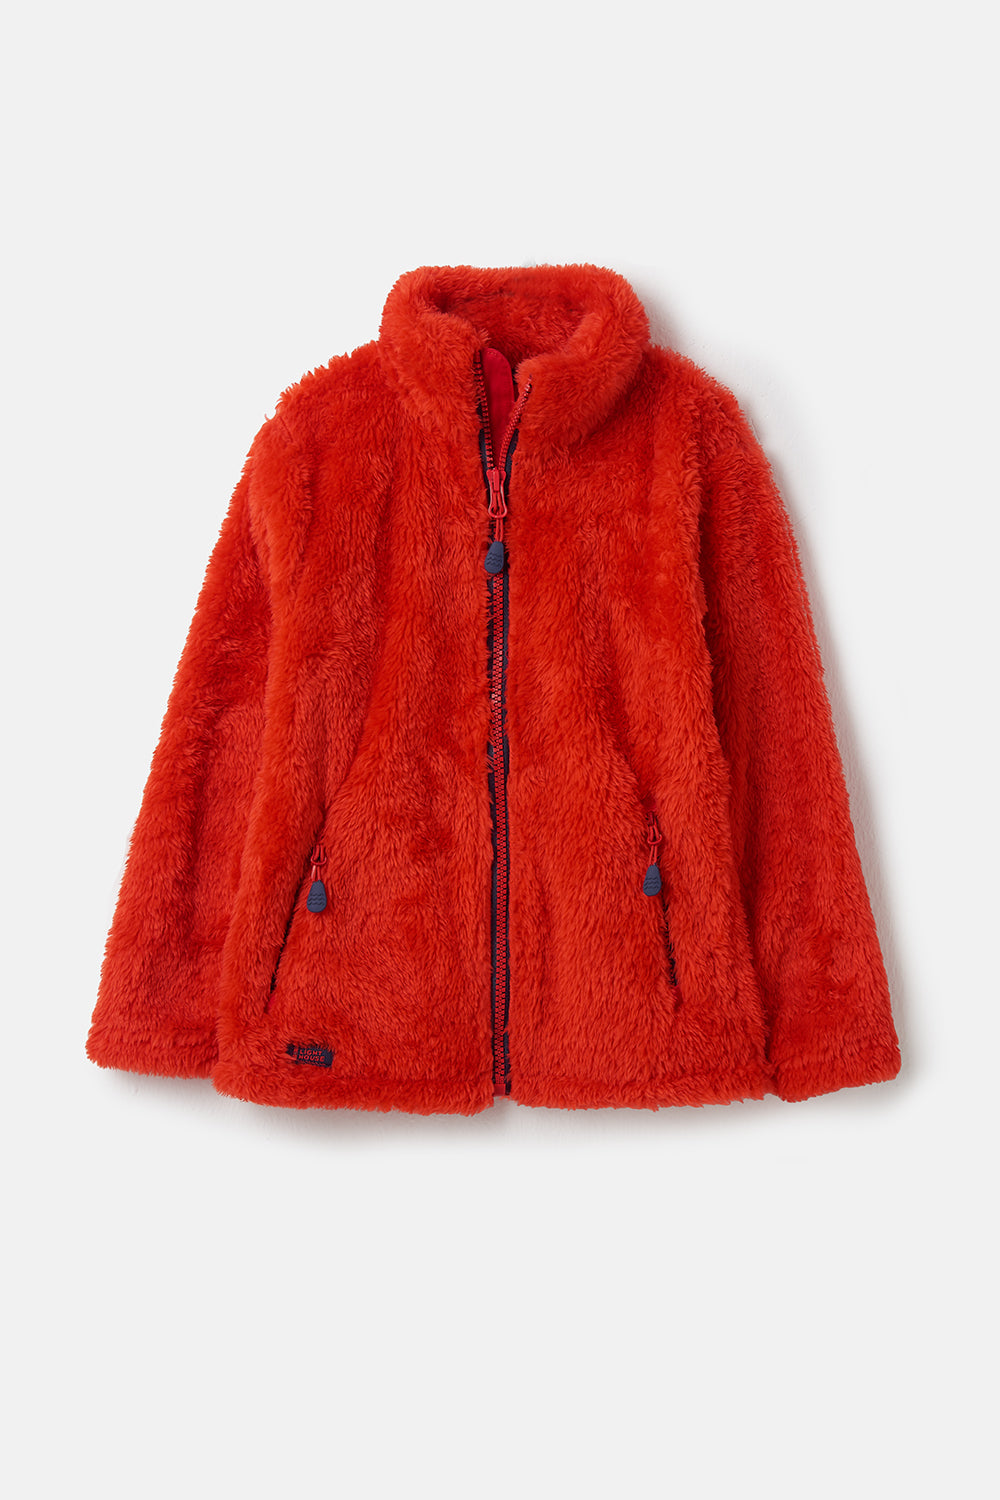 Ted Fleece - Red, Boy's Full Zip Sherpa Fleece | Lighthouse